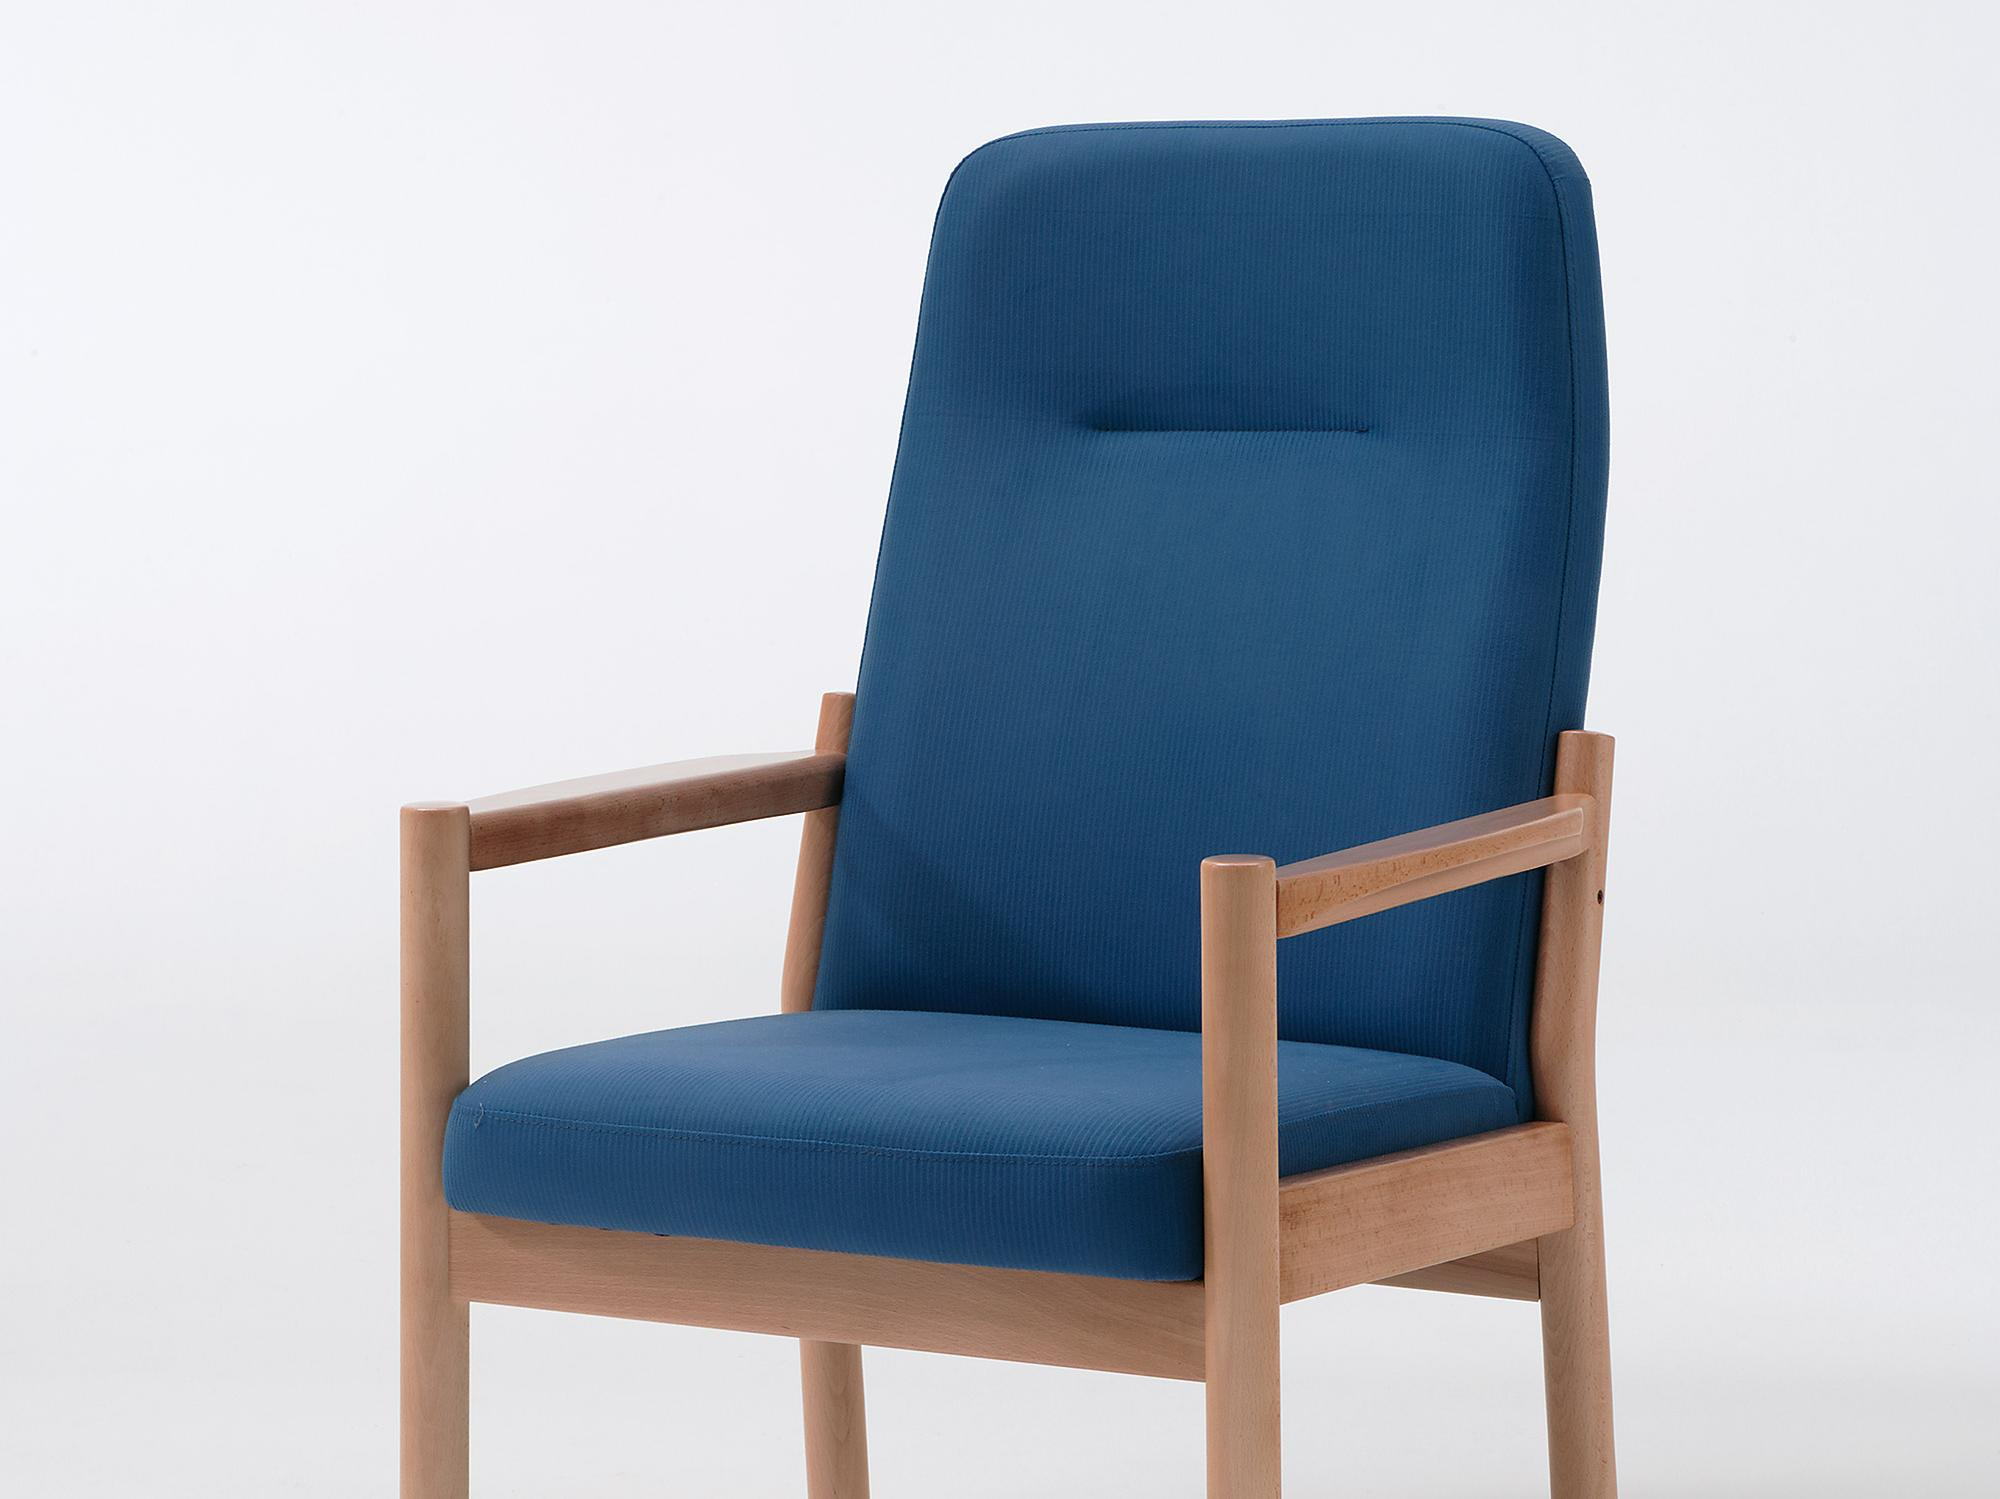 The Primo model as a high-back easy chair